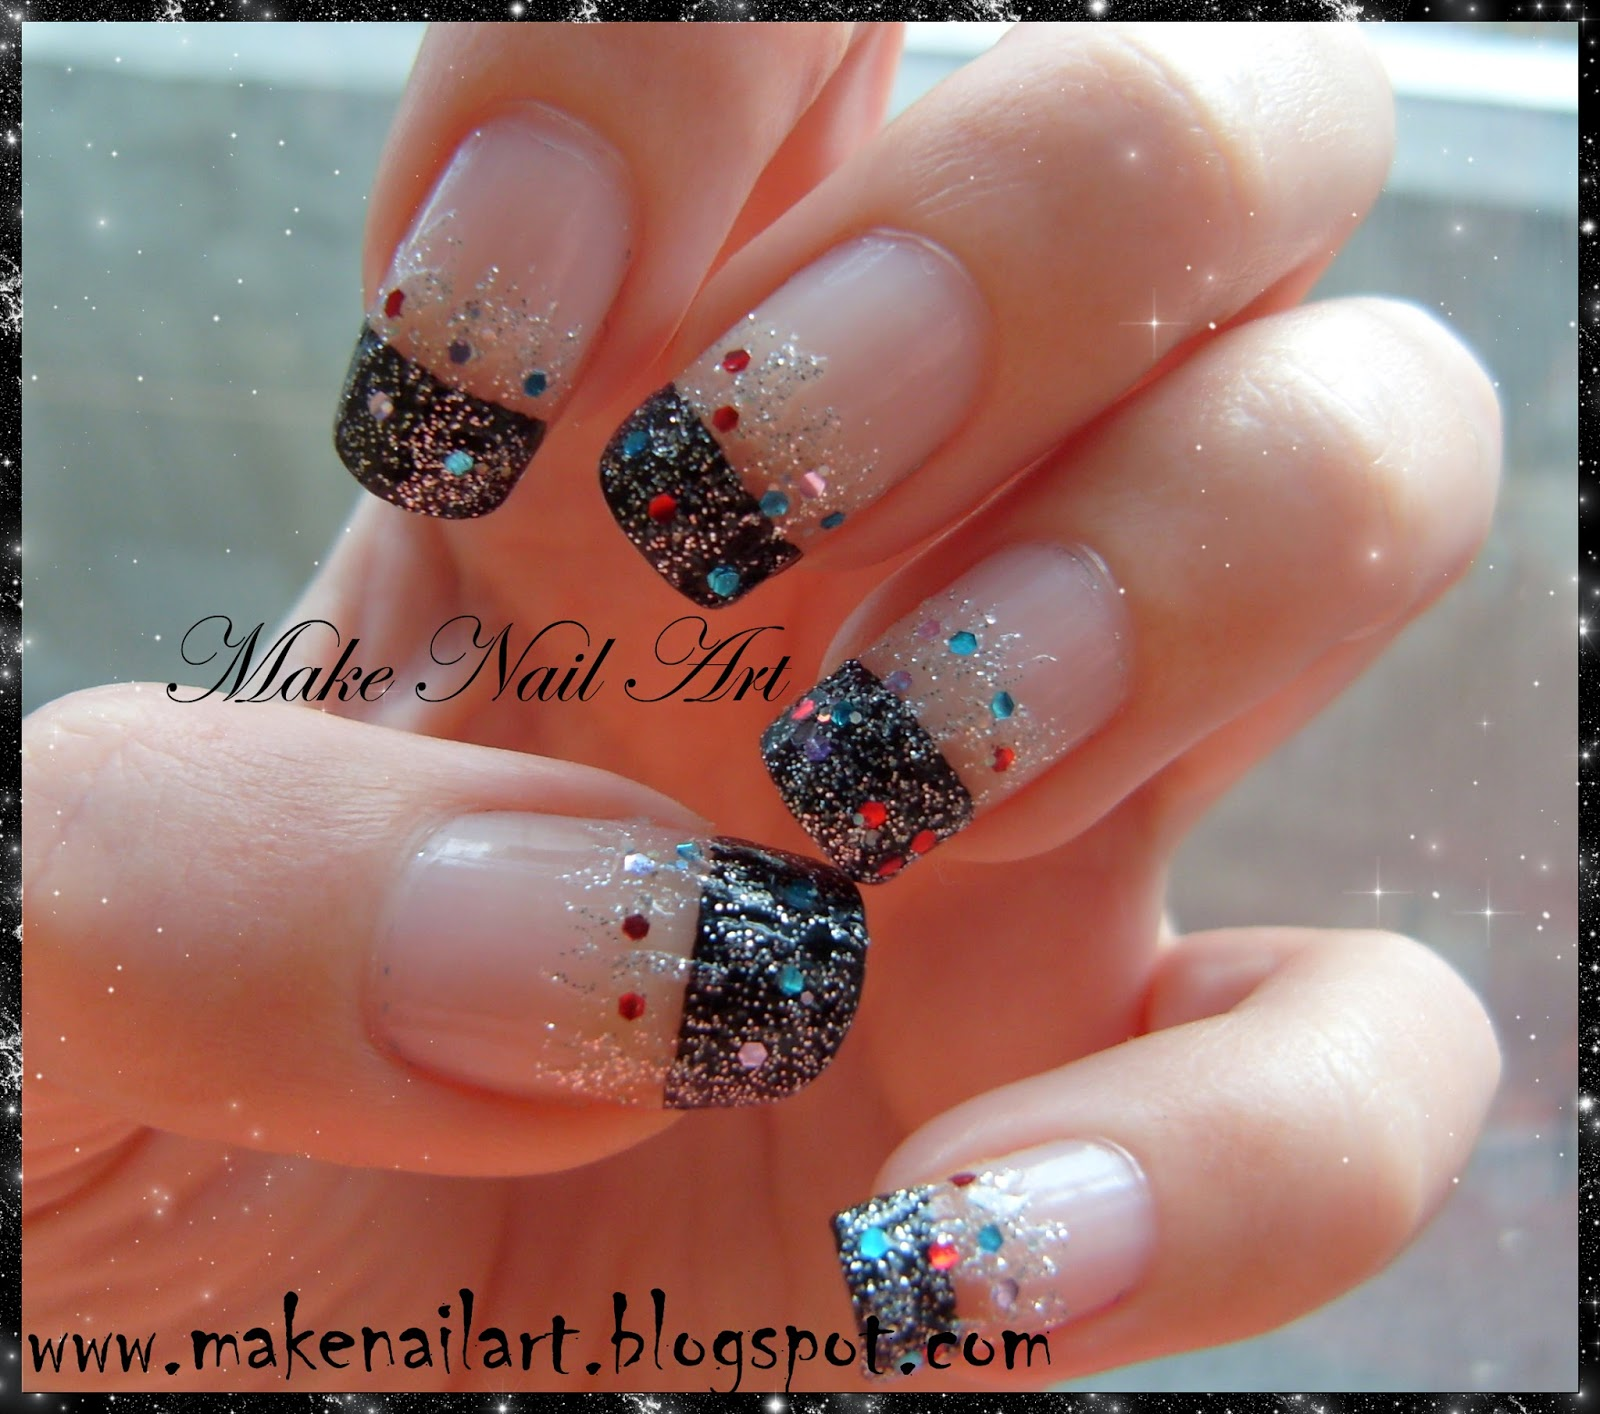 Make nail art december 2013 easy new years eve nail art tutorial prinsesfo Images